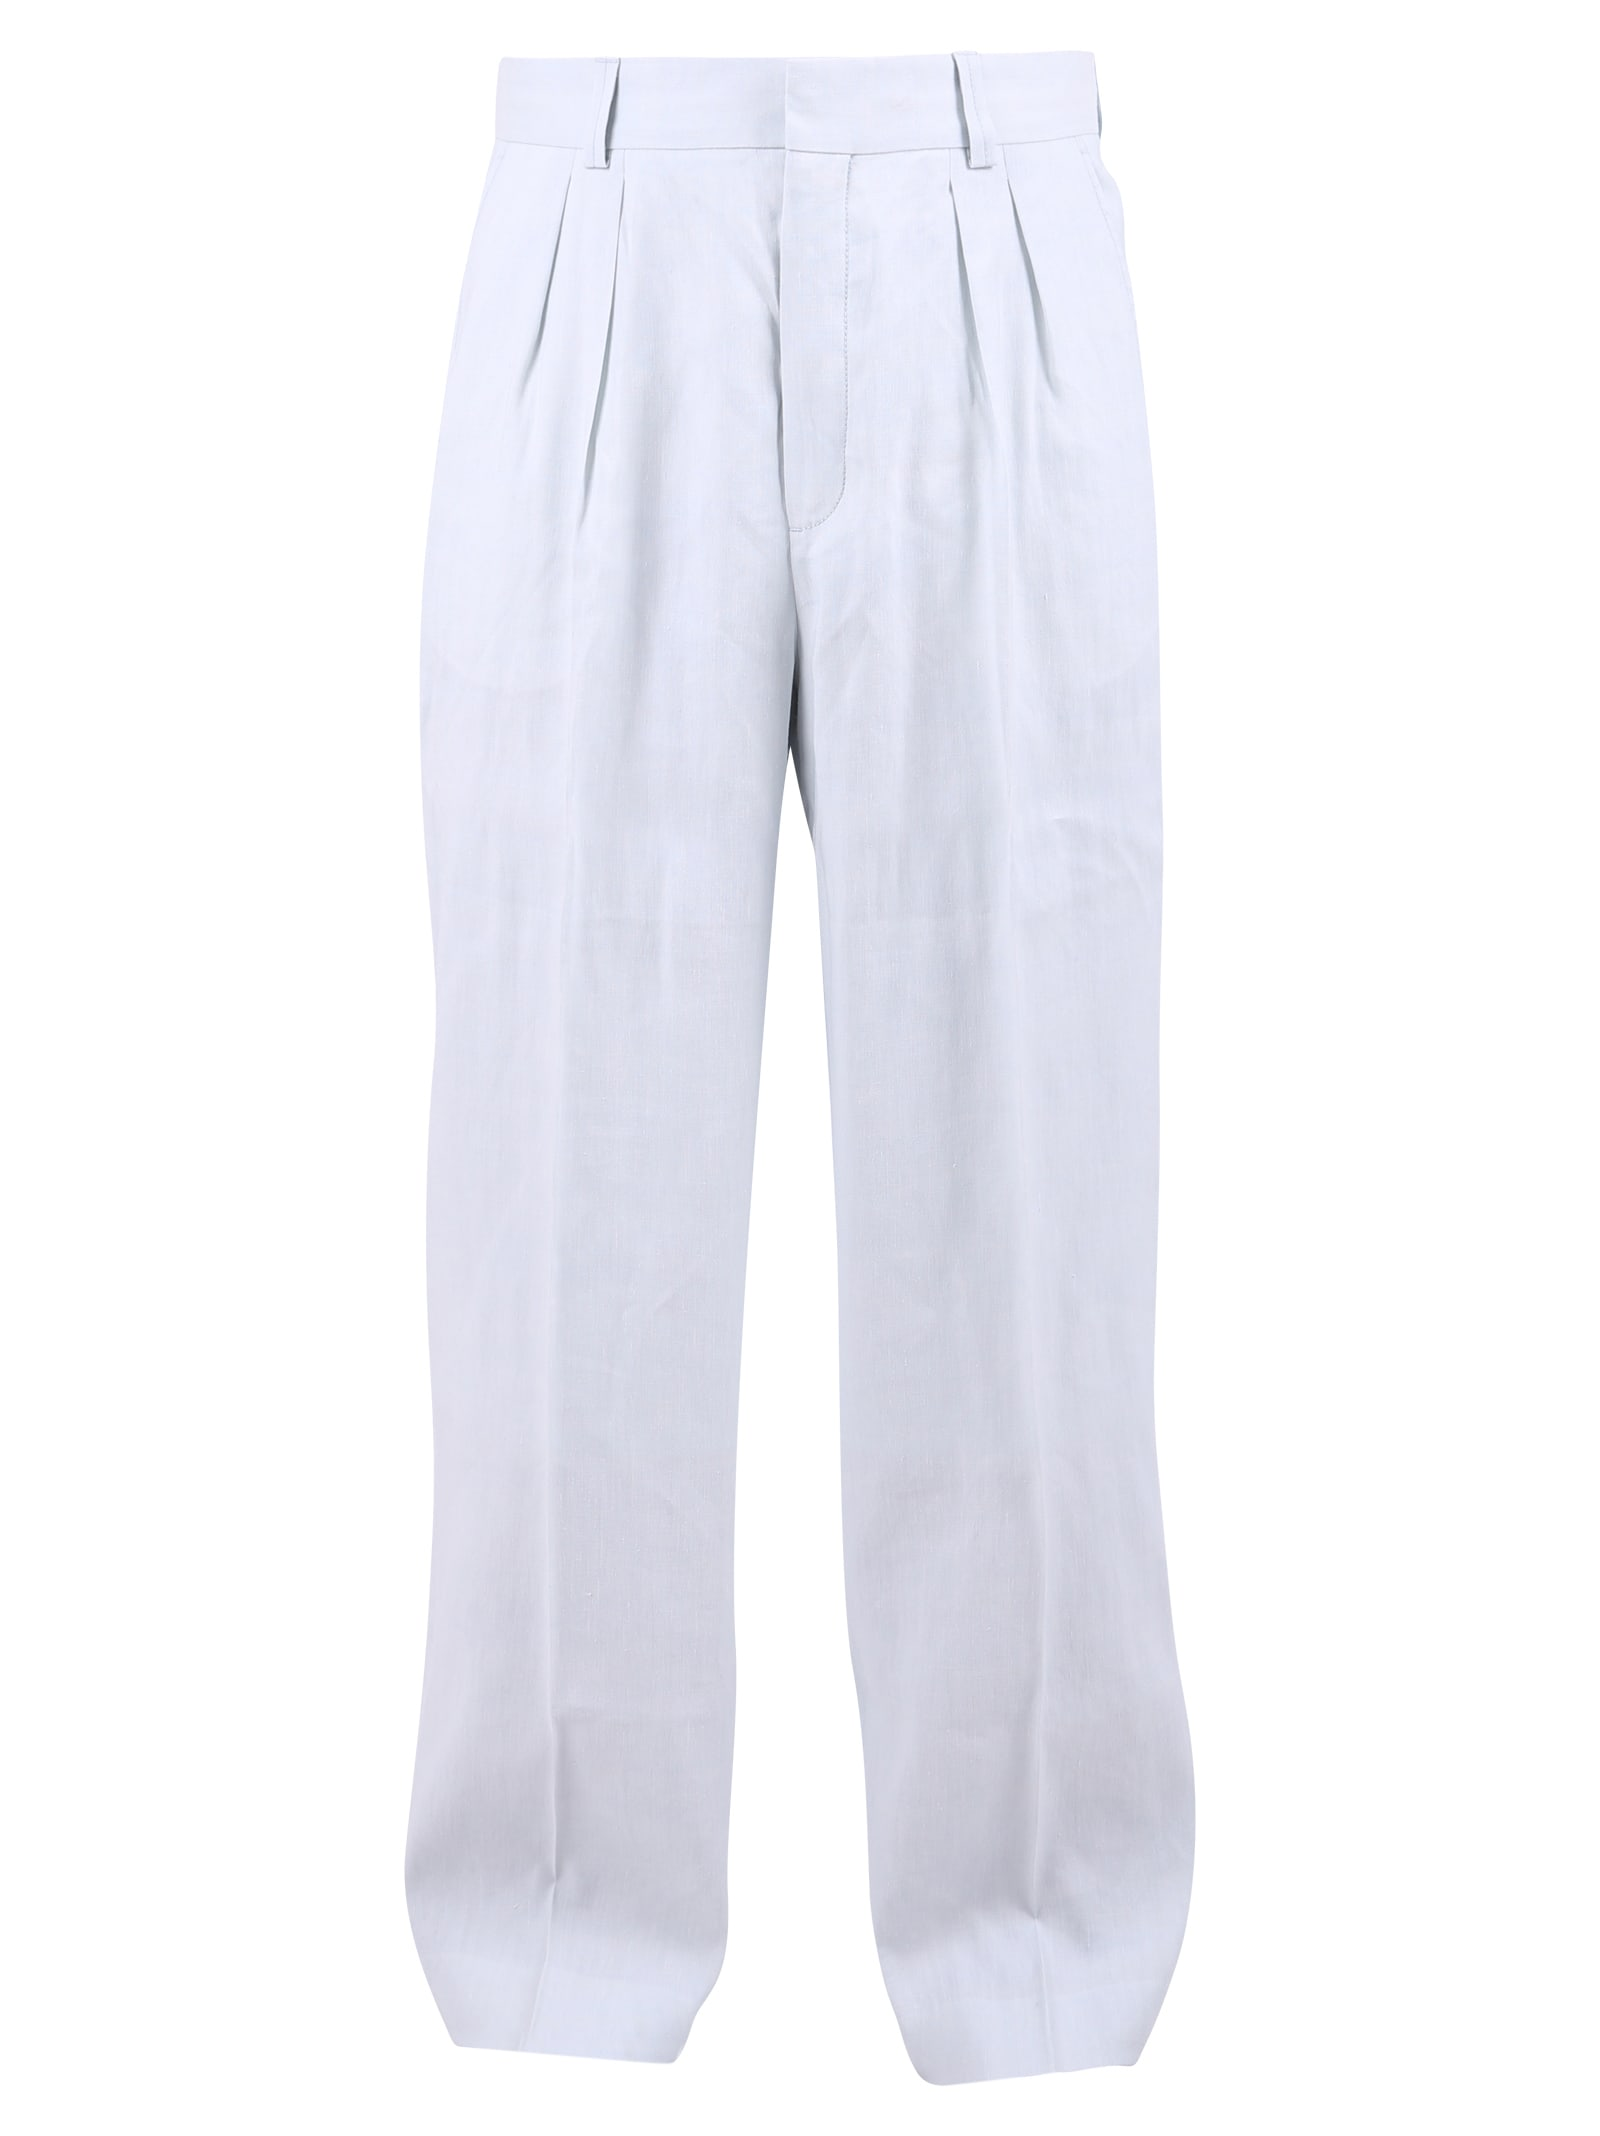 Jacquemus Grey Trousers